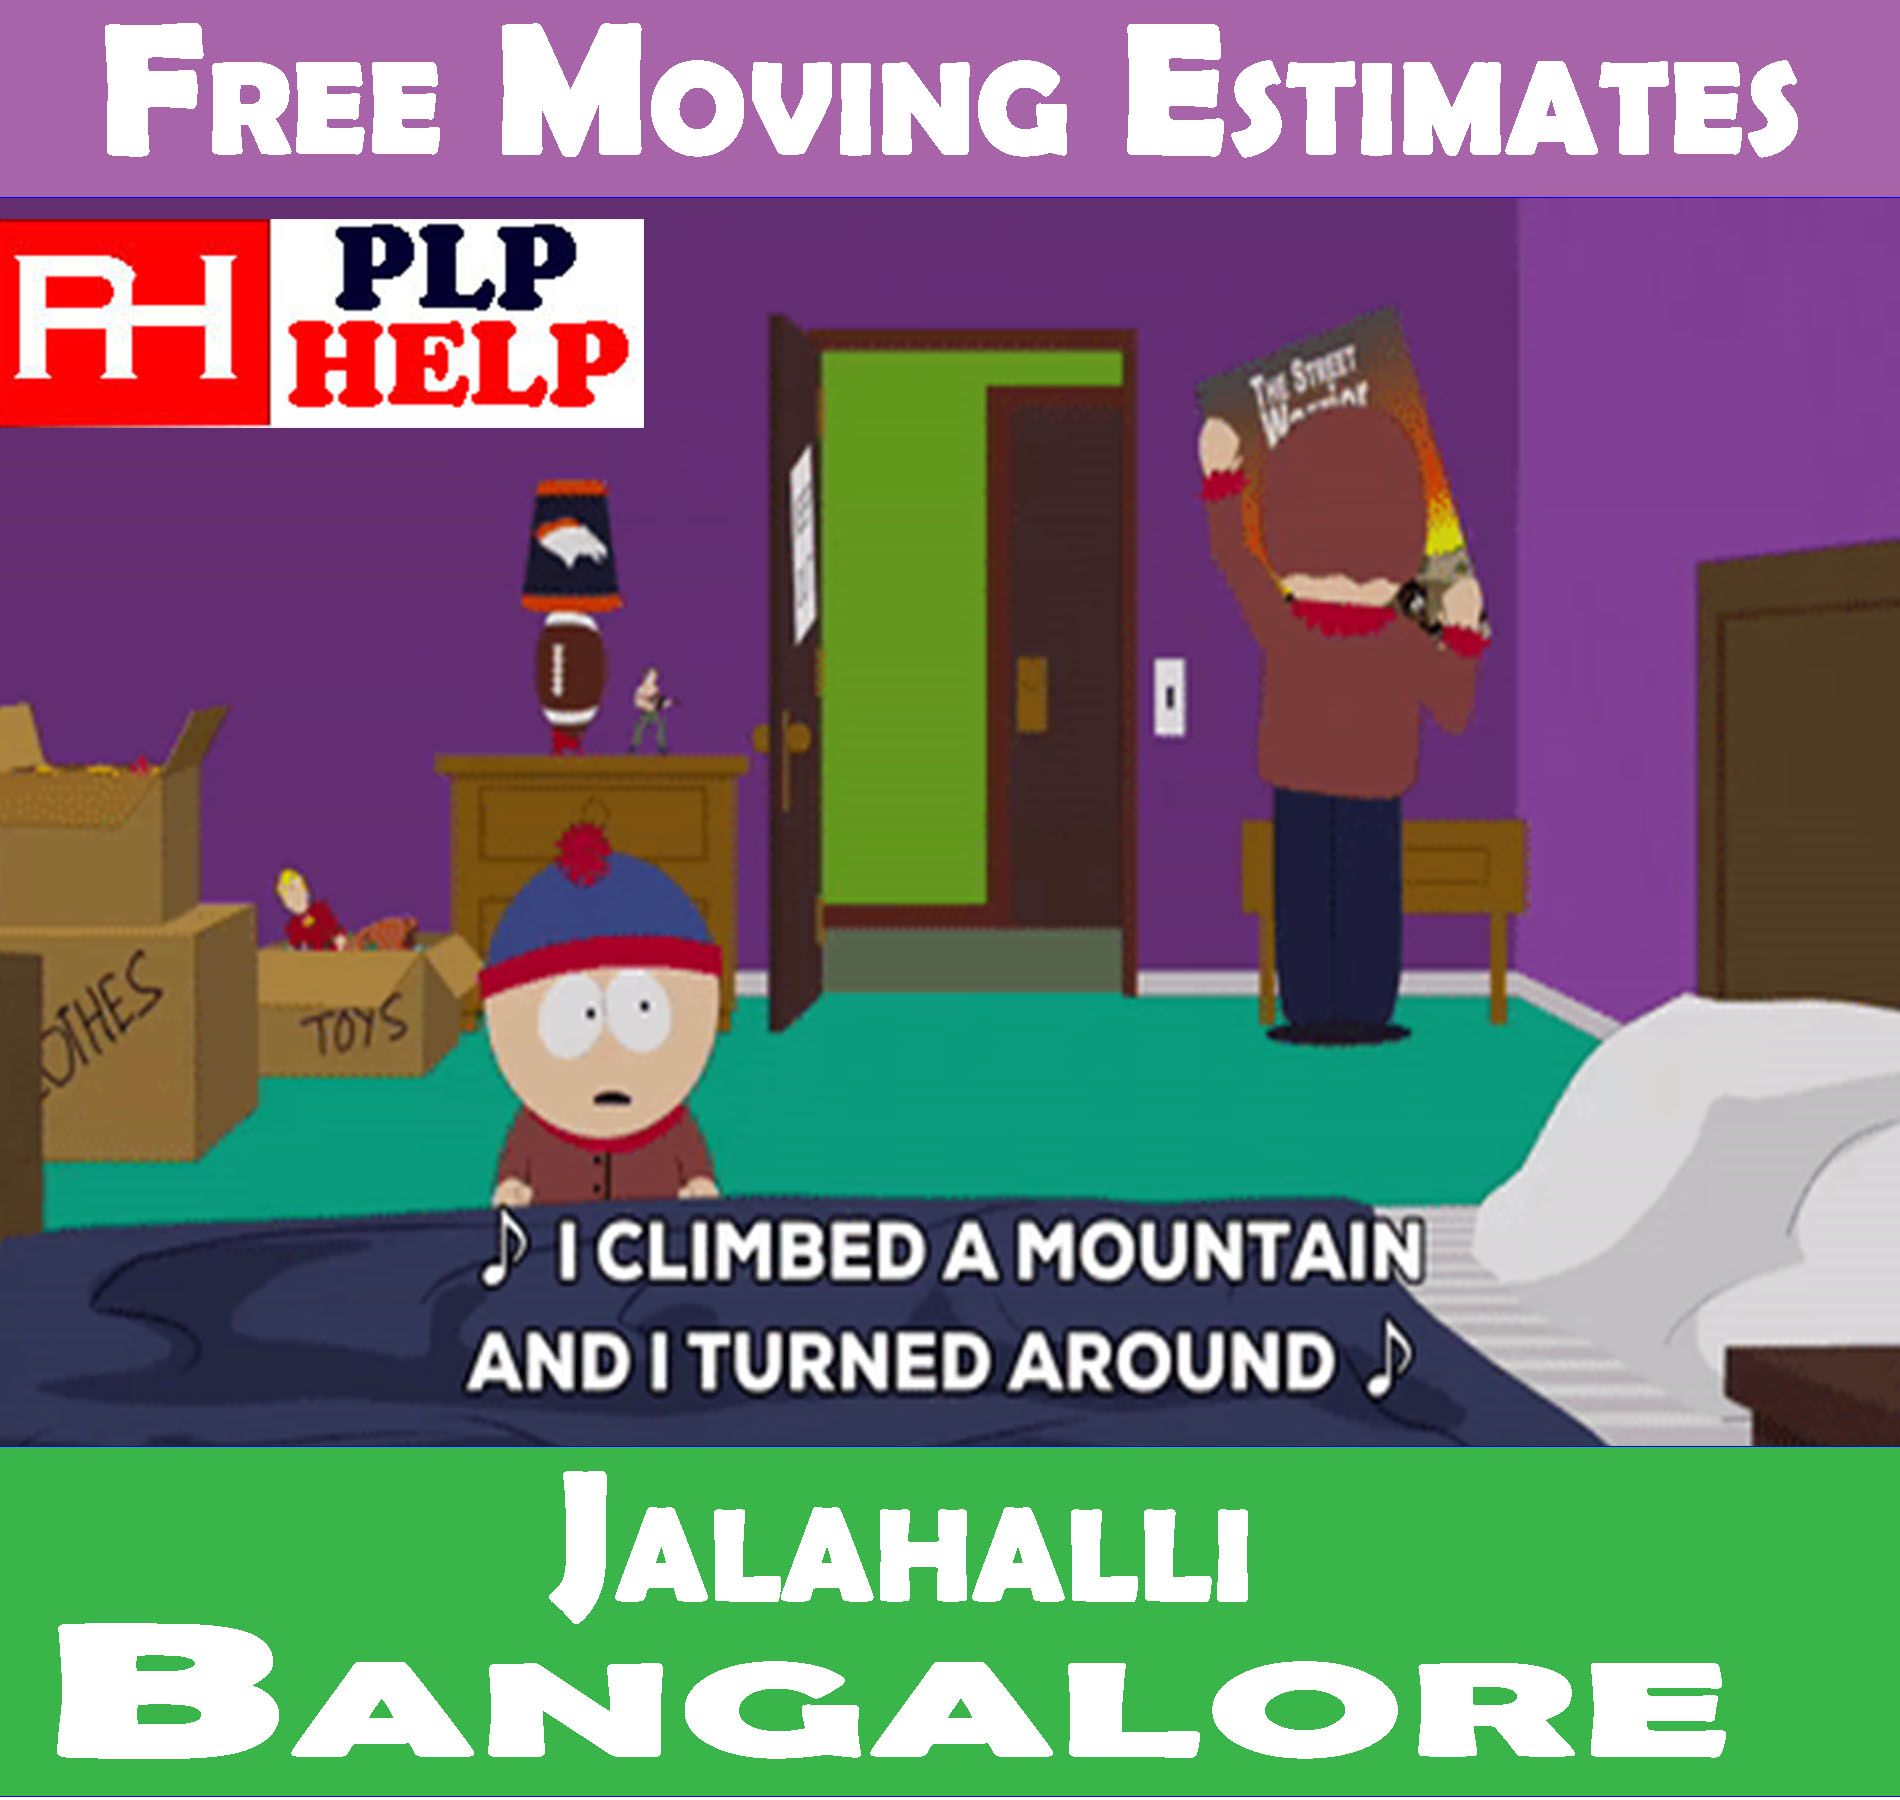 Packers and Movers In Jalahalli